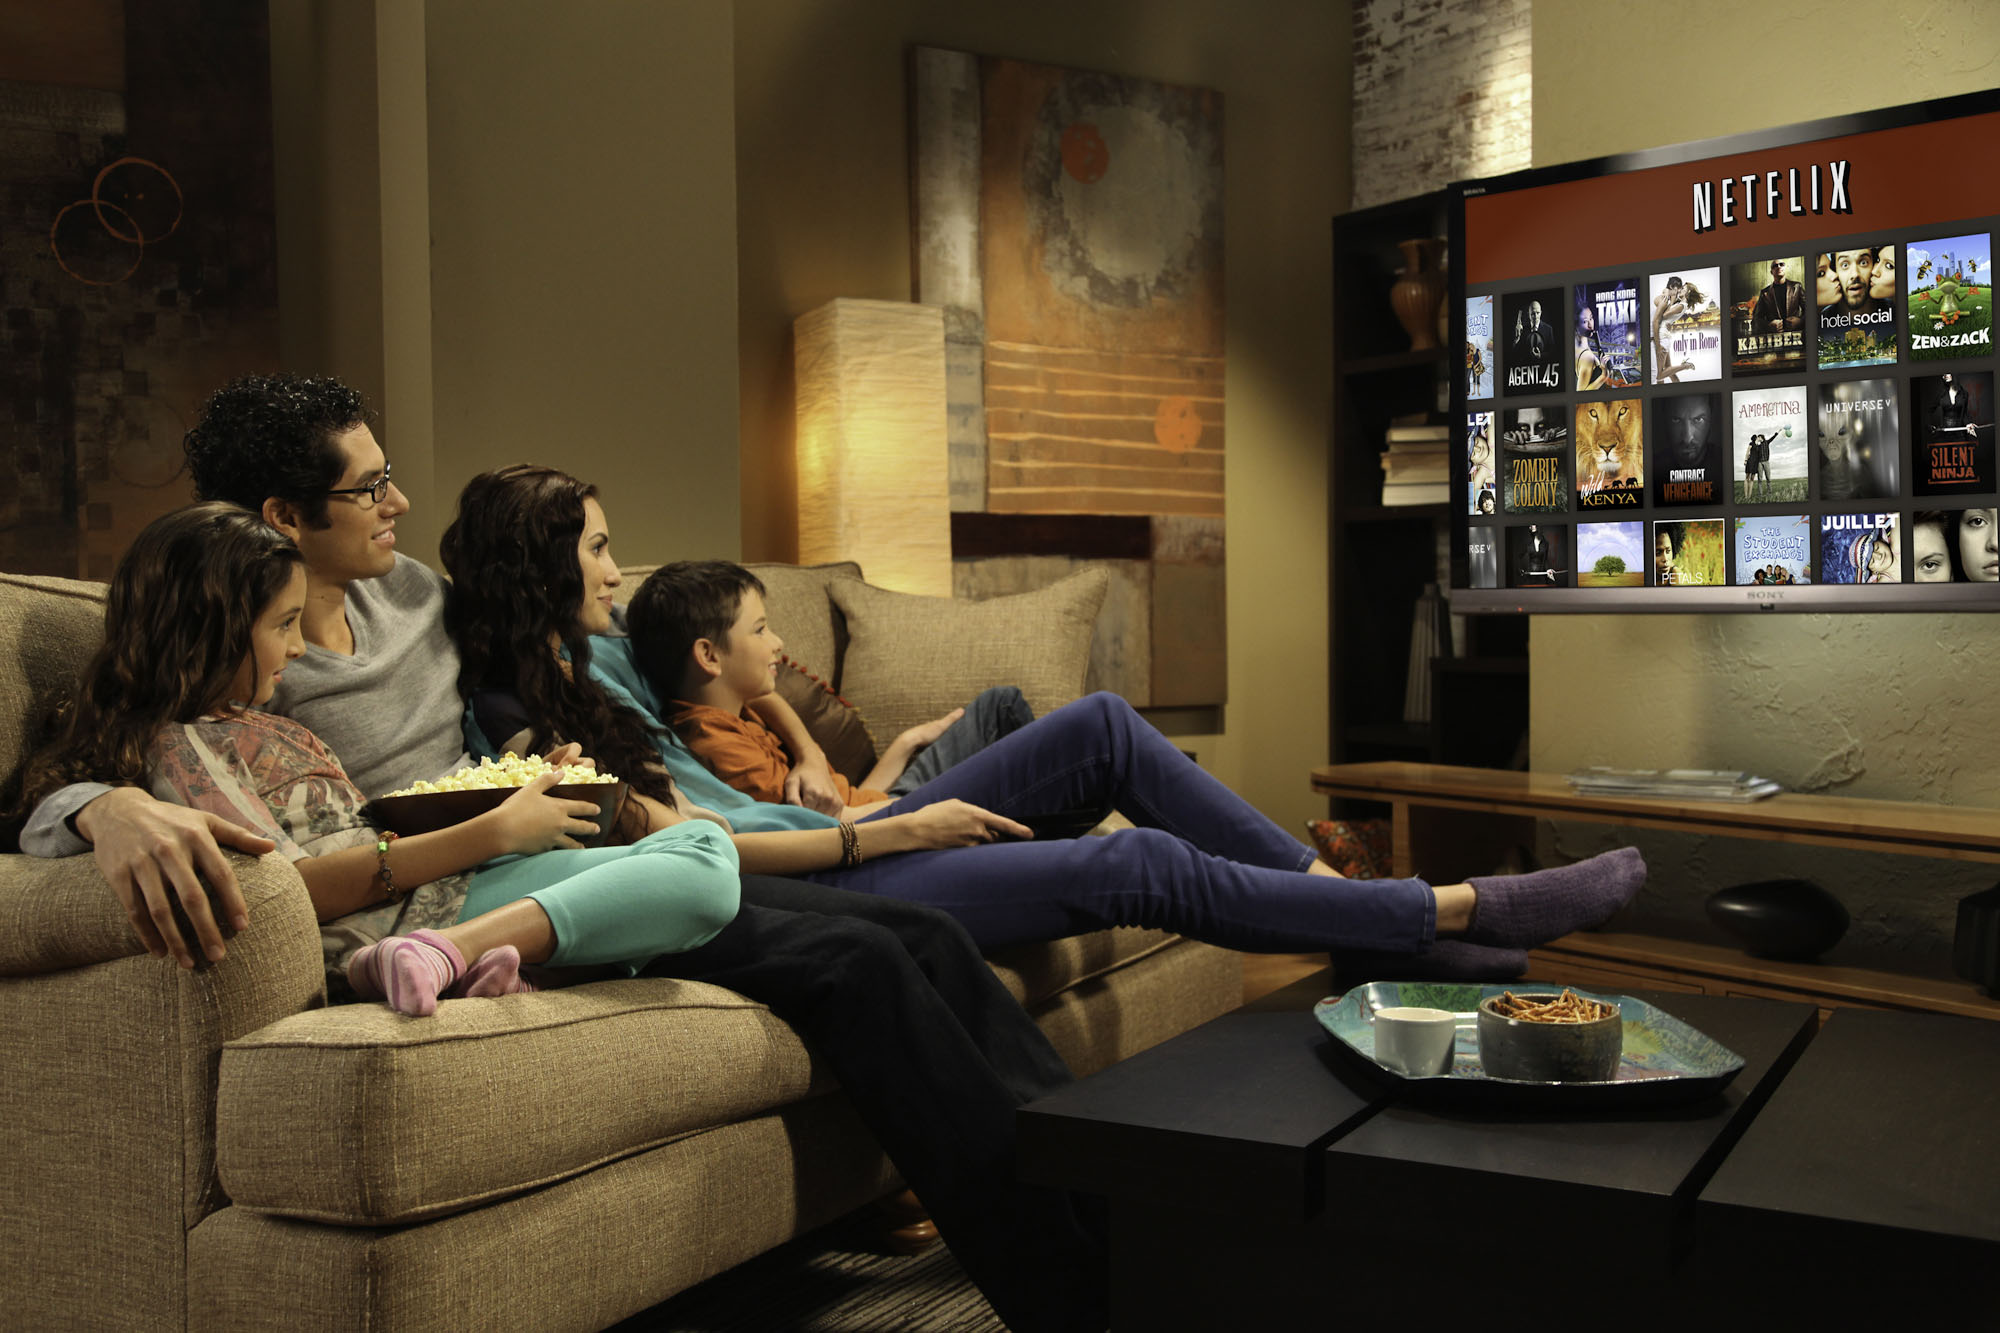 Cougar Life Pictures >> Netflix, Hulu Plus or cable TV? - The Daily Universe